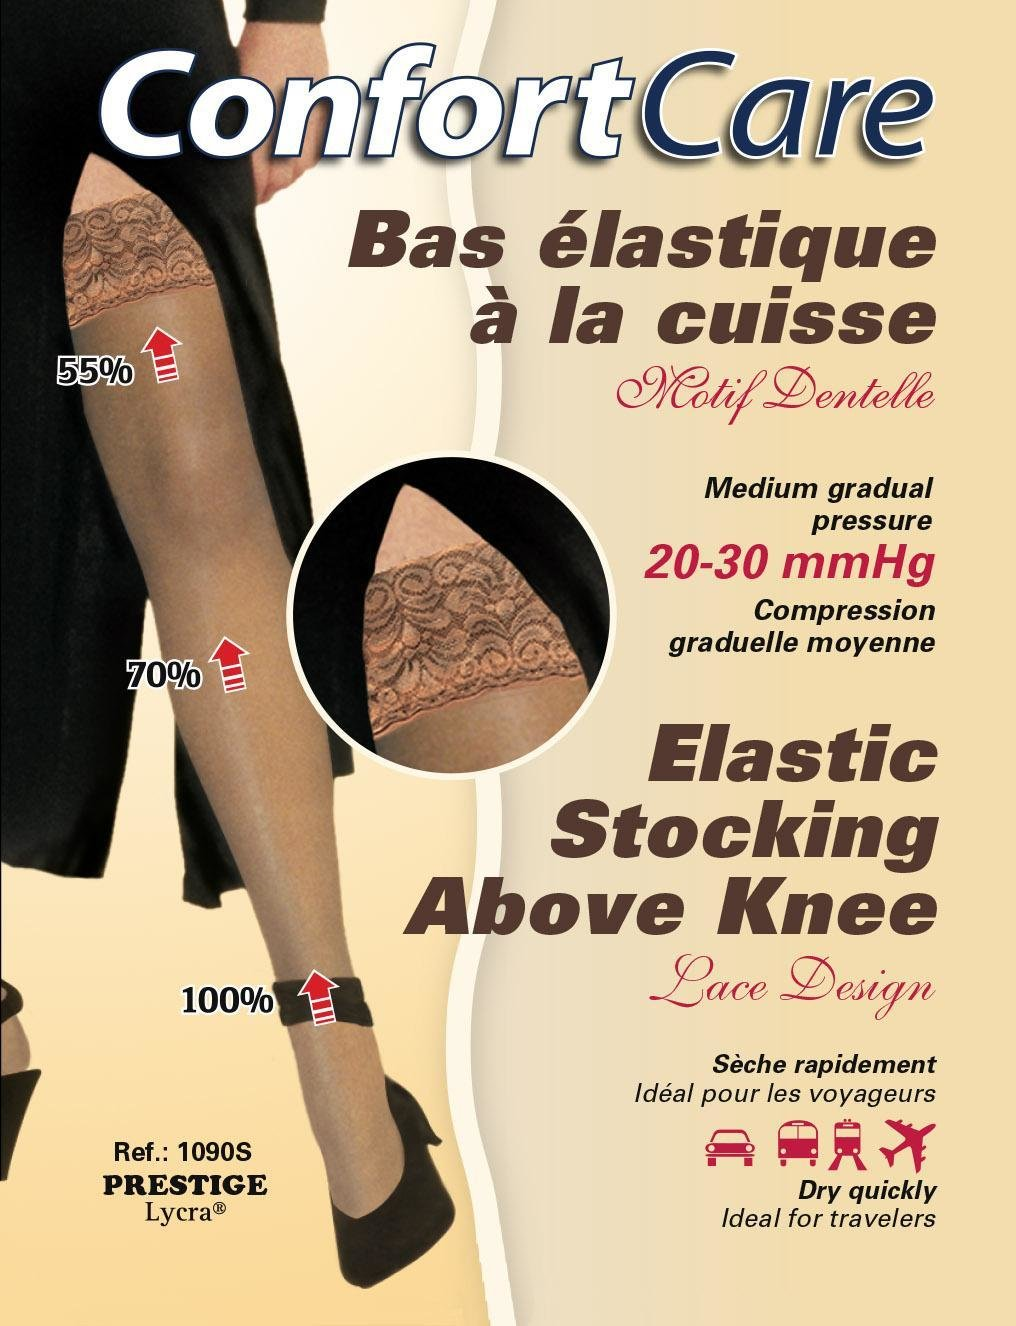 Elastic Stockings Above knee high compression